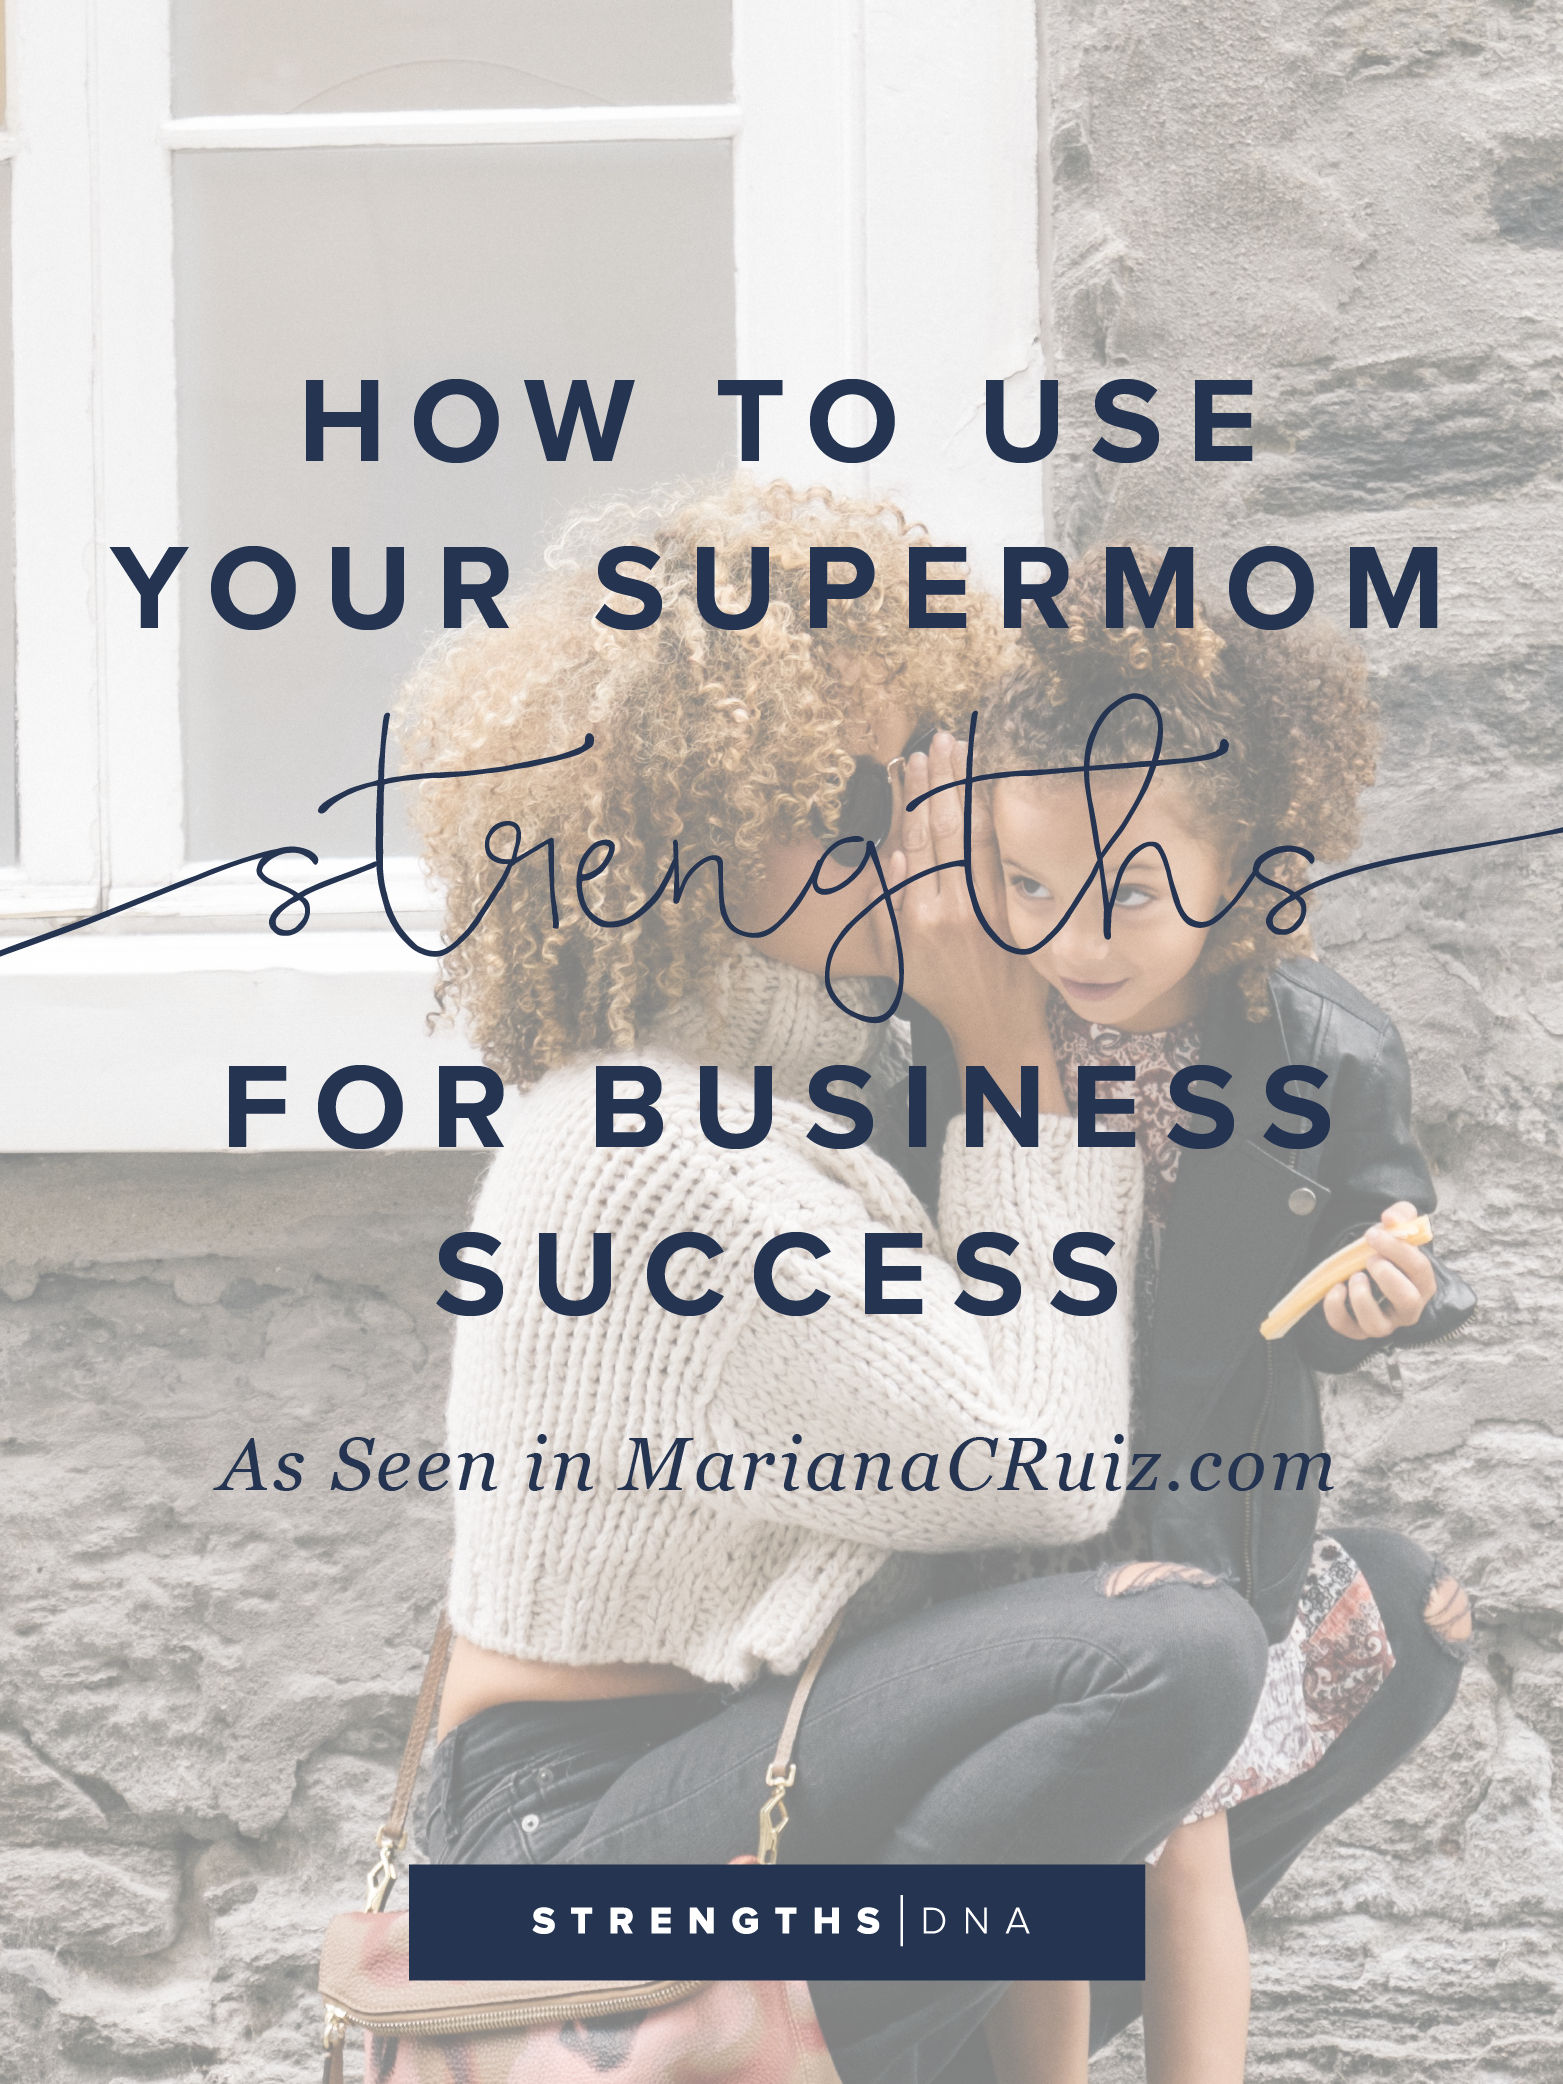 How to Use Your Supermom Strengths for Business Success - As seen in MarianaCRuiz.com